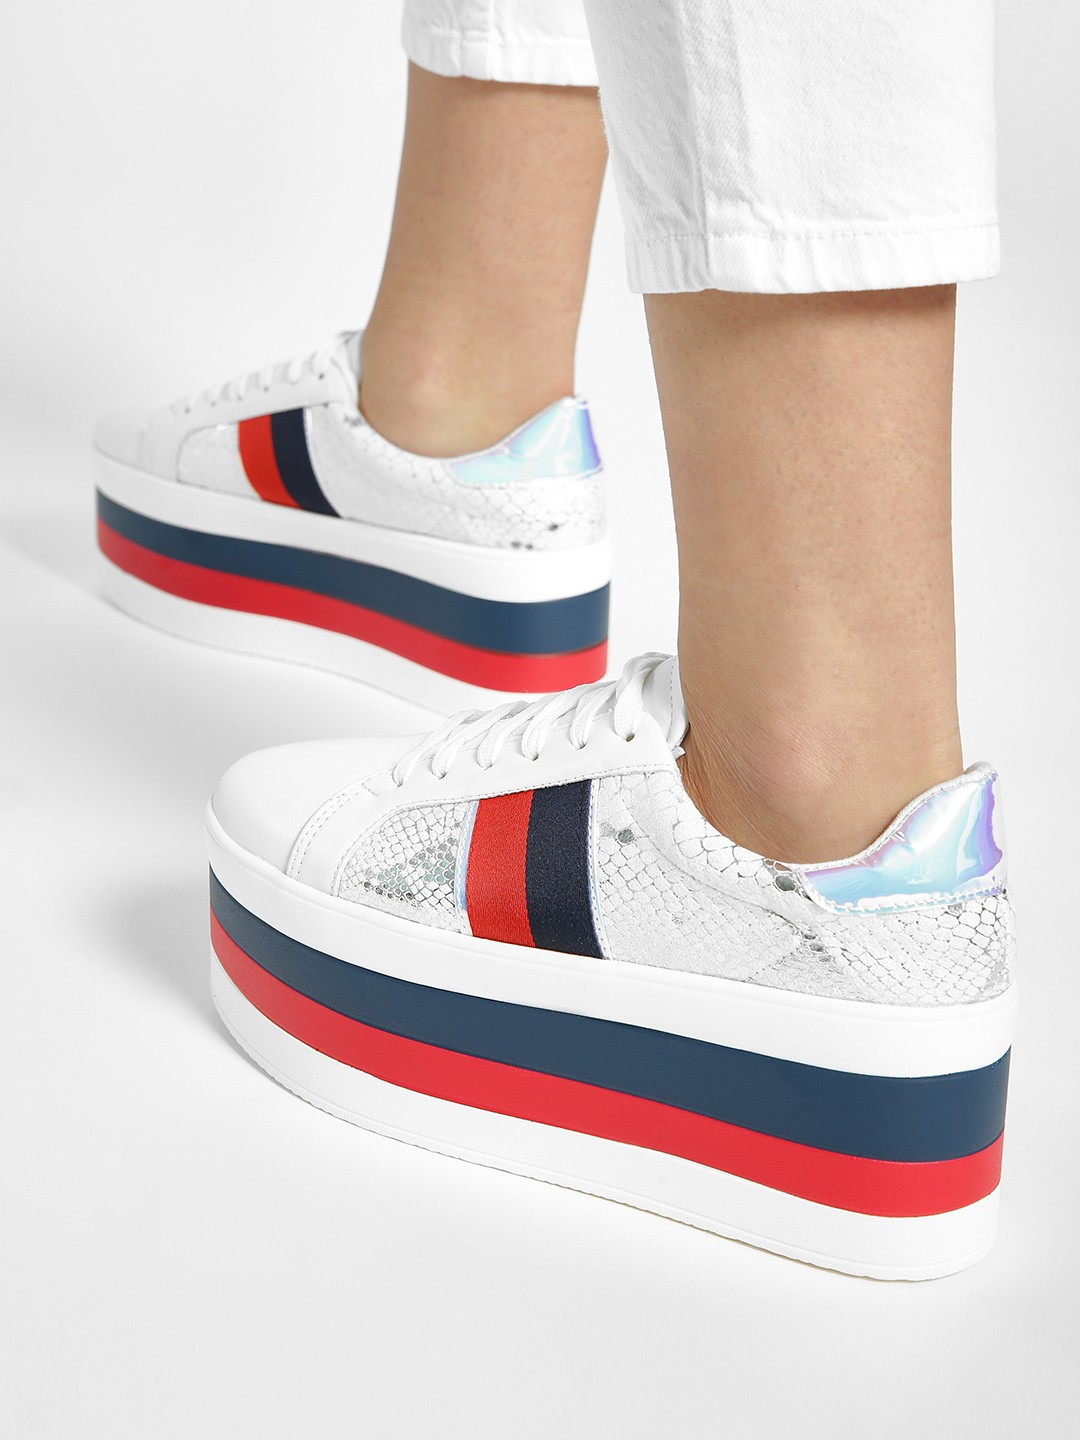 My Foot Couture Multi Snake Print Holographic Panel Flatform Sneakers 1